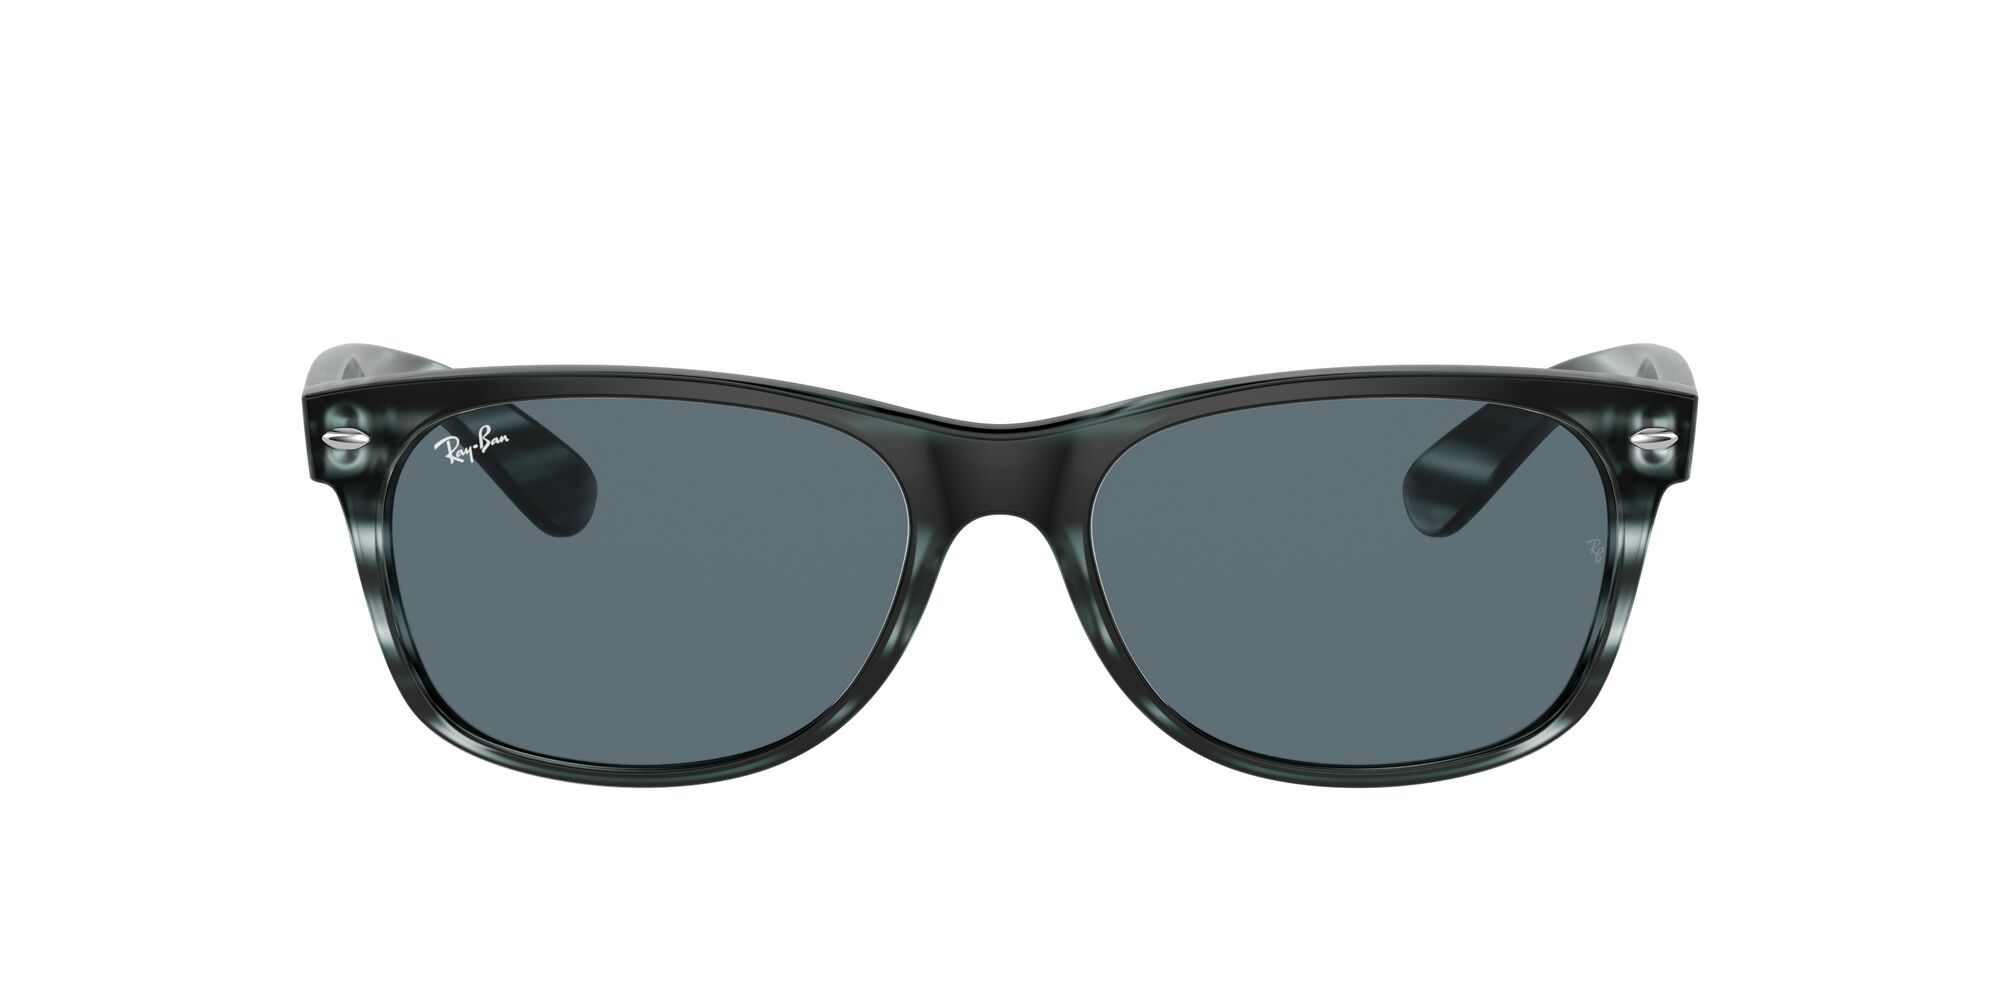 Front Ray-Ban Ray-Ban 0RB2132 6432R5 58/18 Blauw, Bruin/Blauw